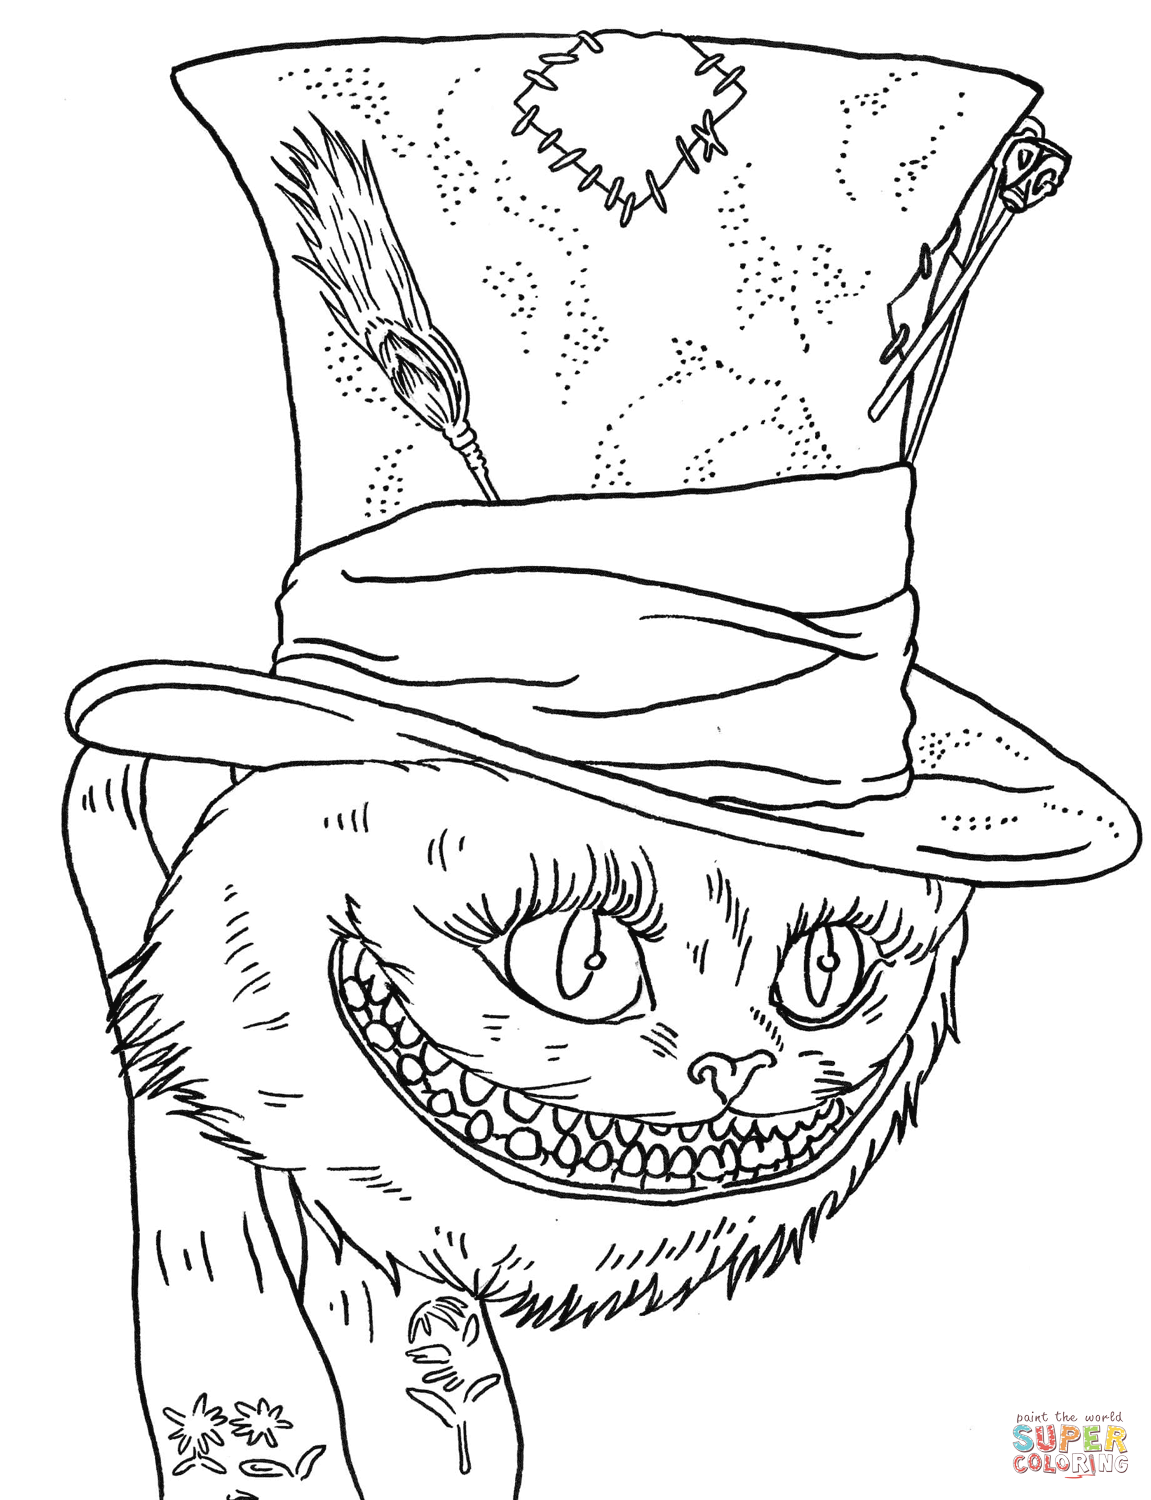 Tim Burtons Cheshire Cat Coloring Page Free Printable